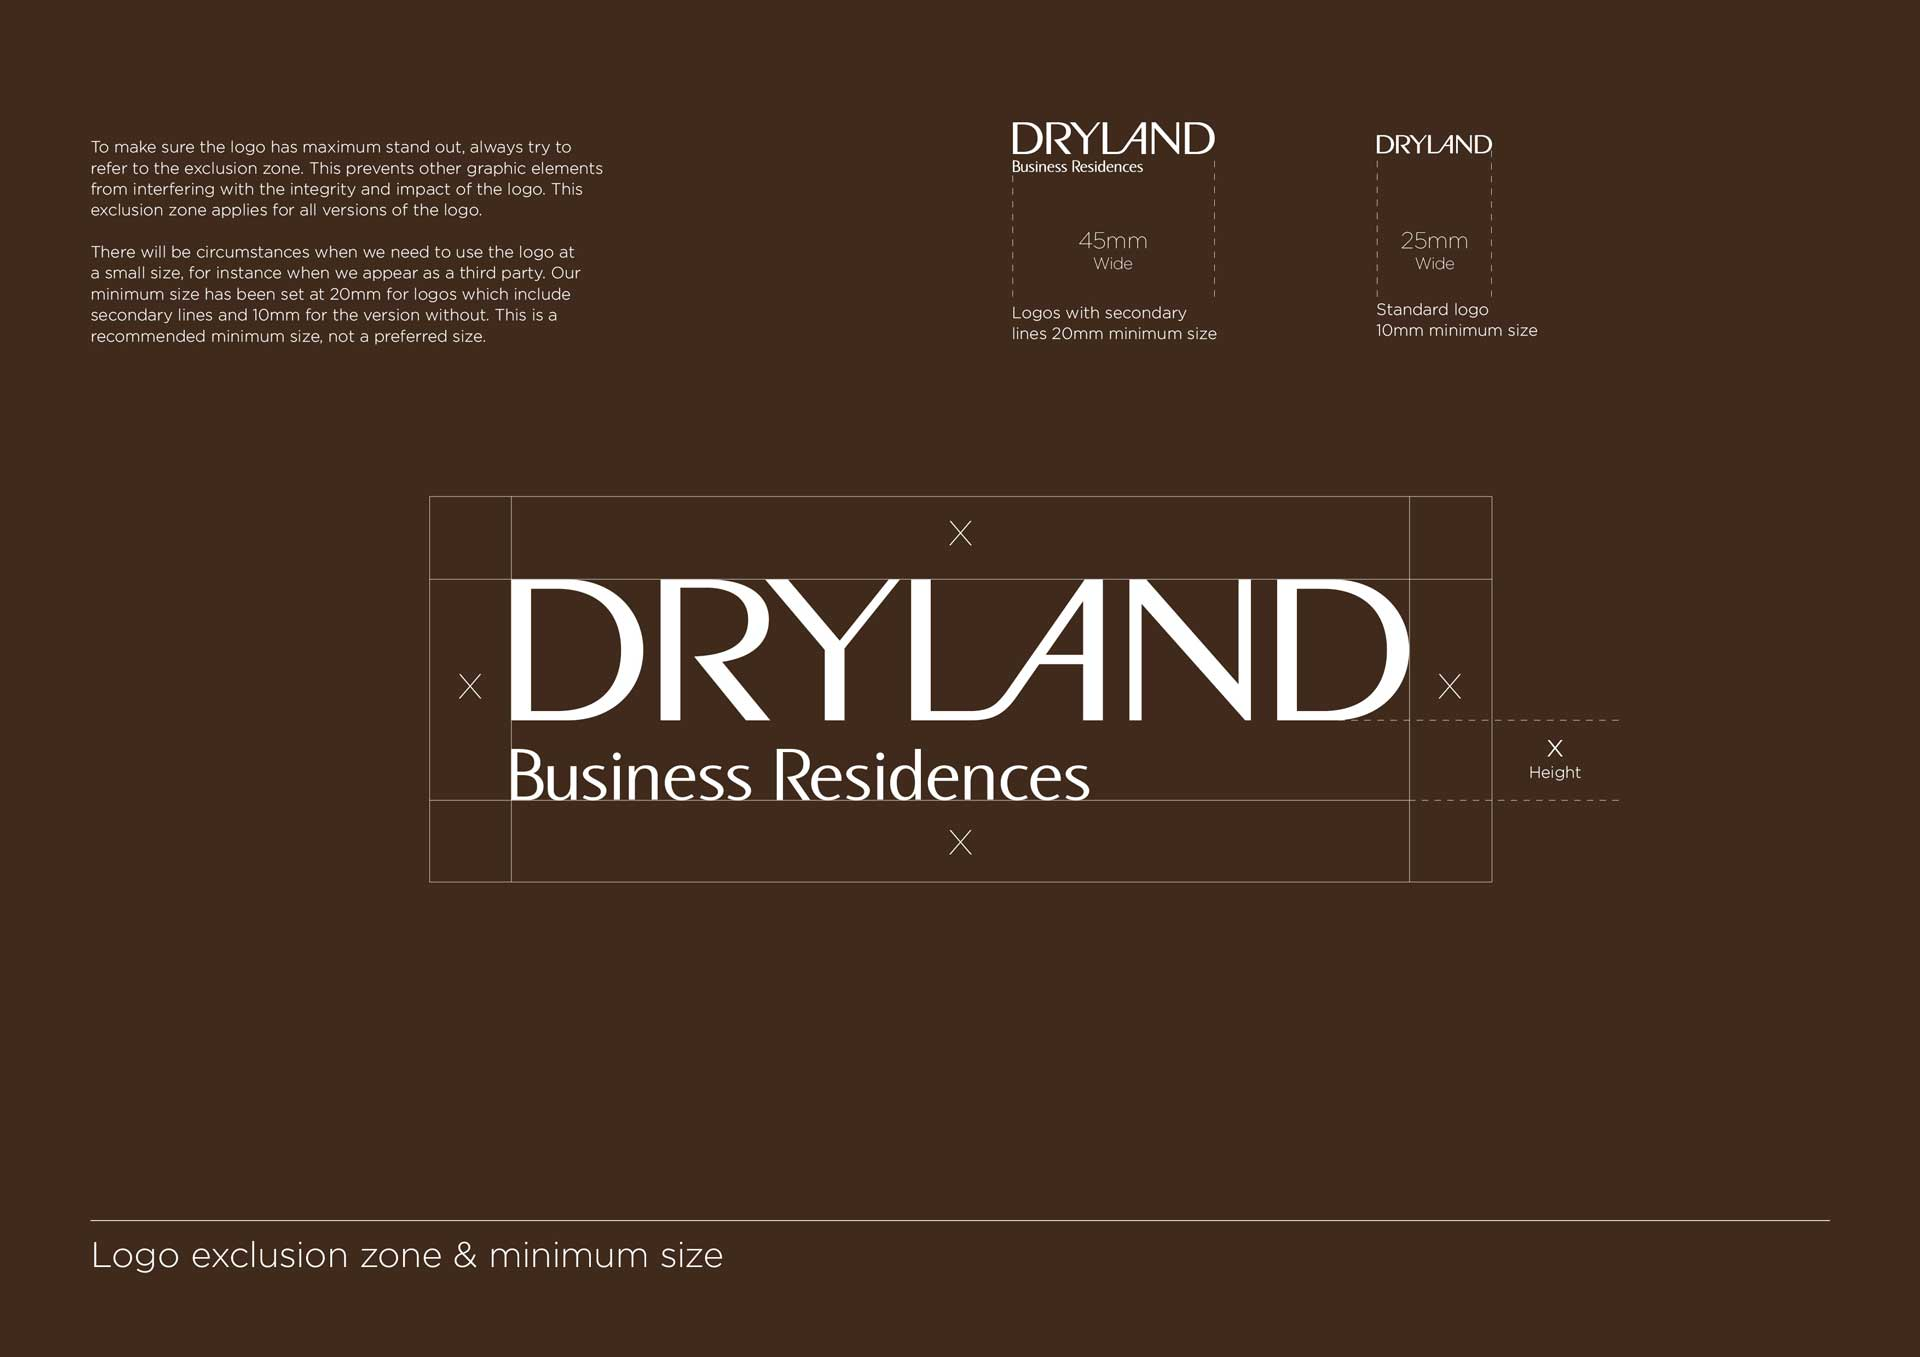 dryland-brand-guidelines-2